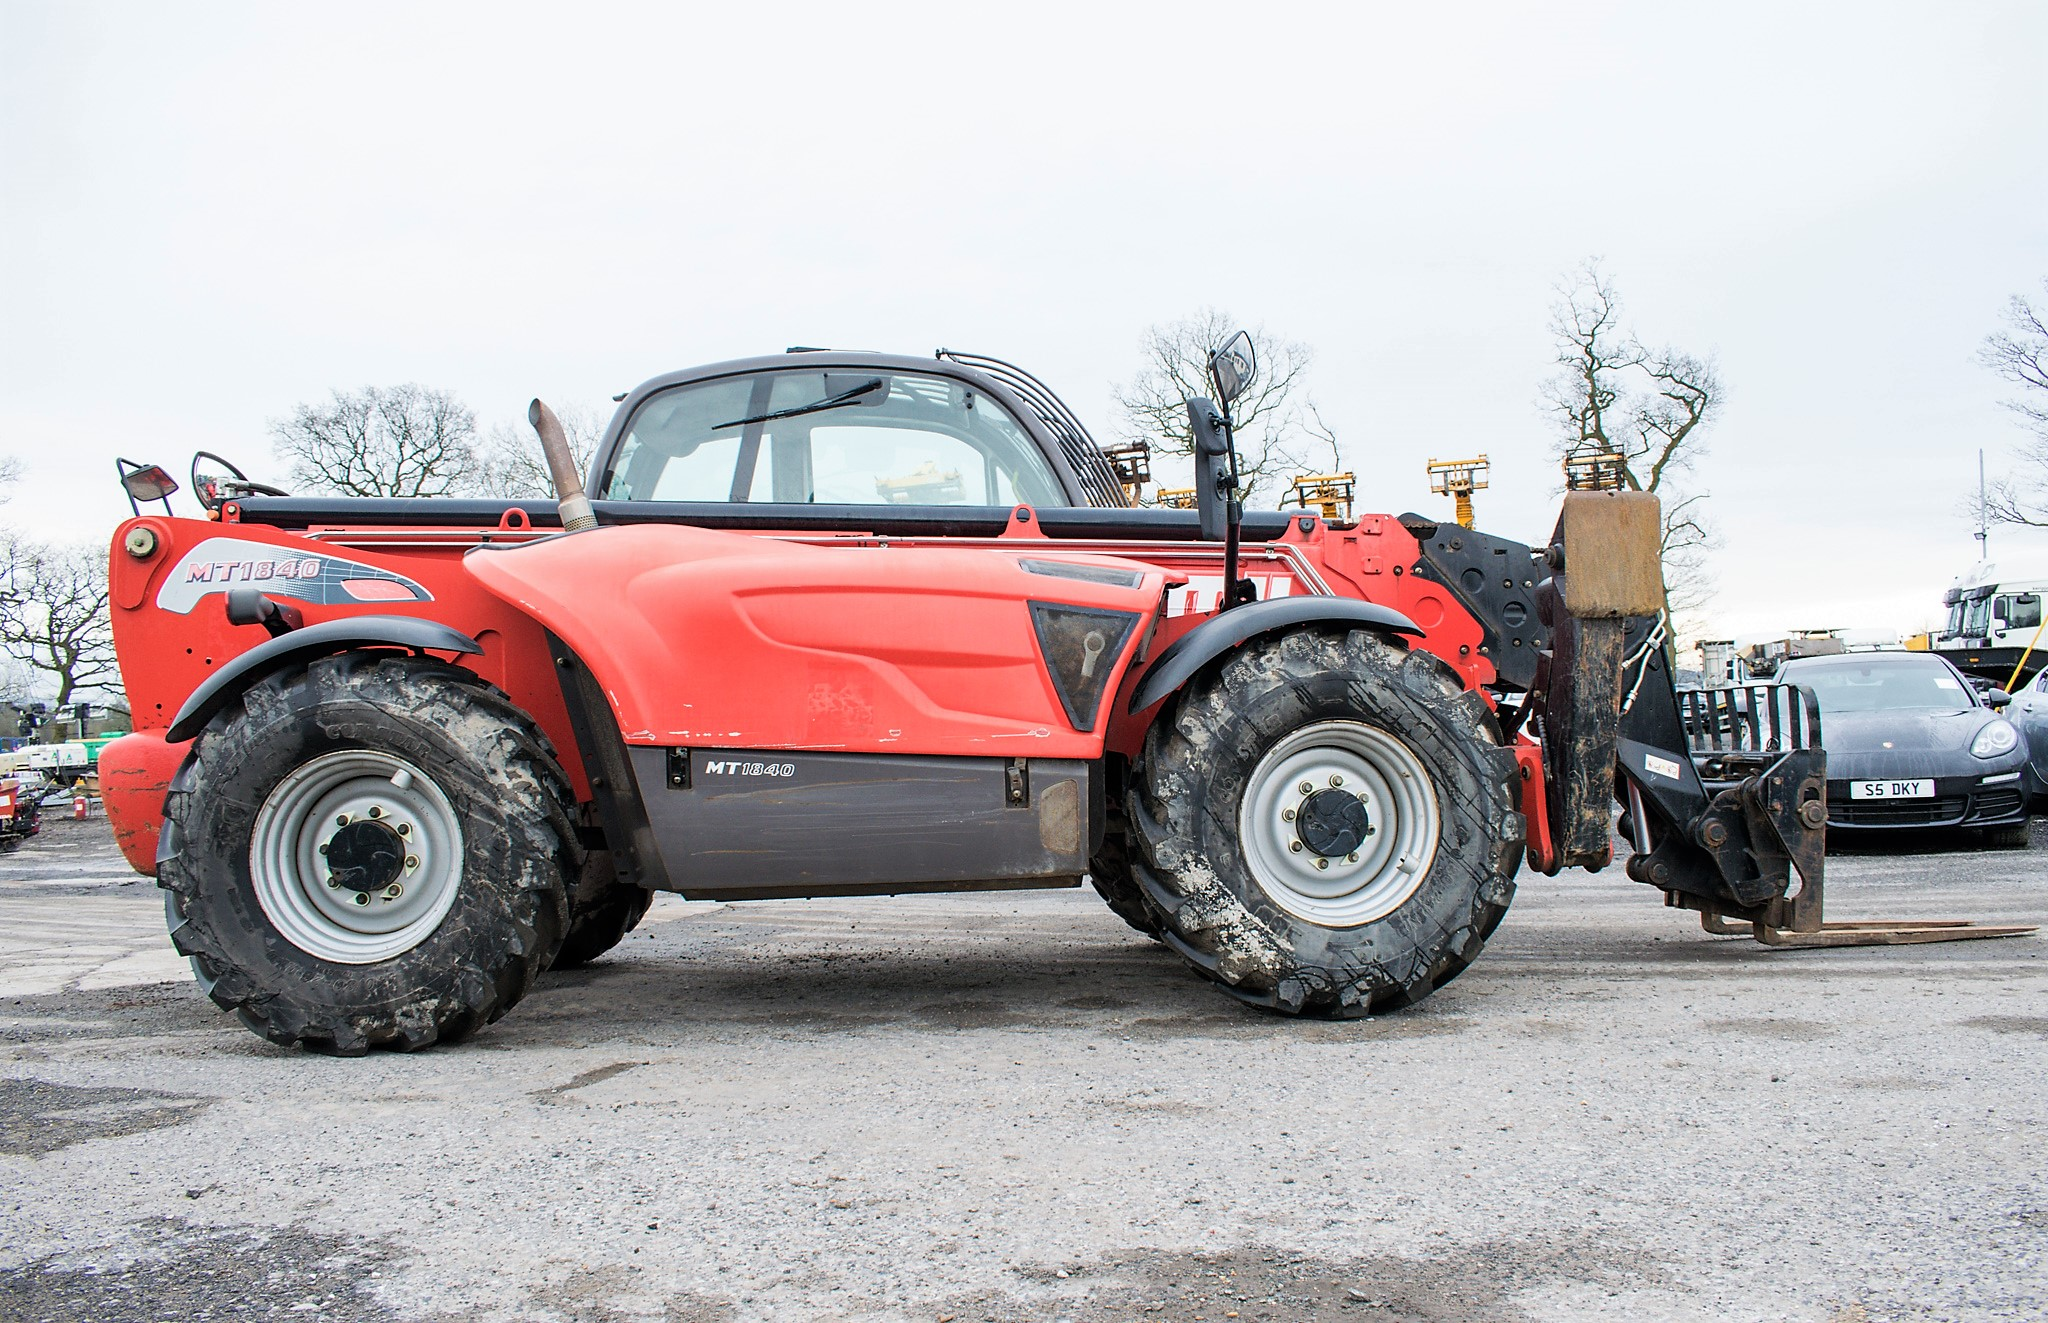 Manitou MT1840 18 metre telescopic handler Year: 2014 S/N: 942628 Recorded Hours: 4160 c/w sway - Image 8 of 22